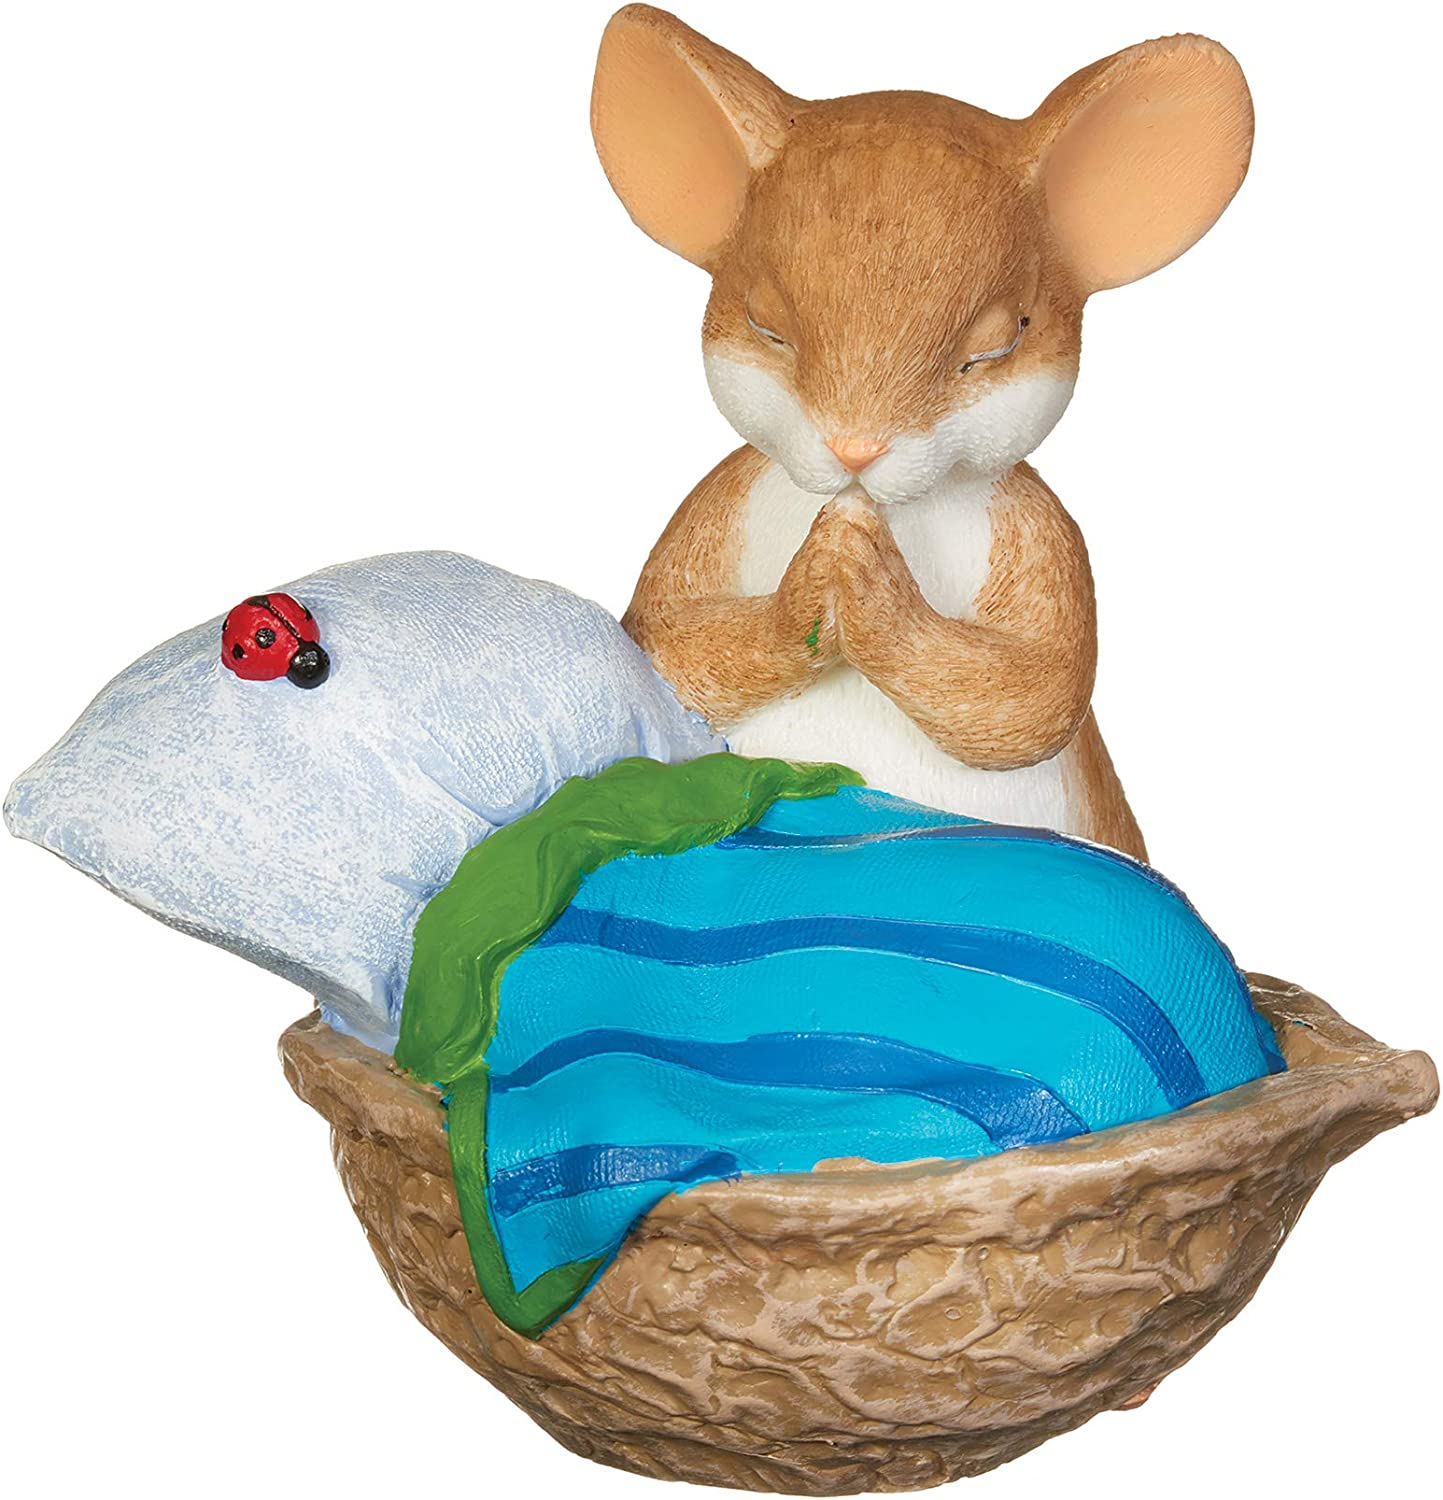 Roman - Charming Tails Collection, Praying Mouse Figure, 3